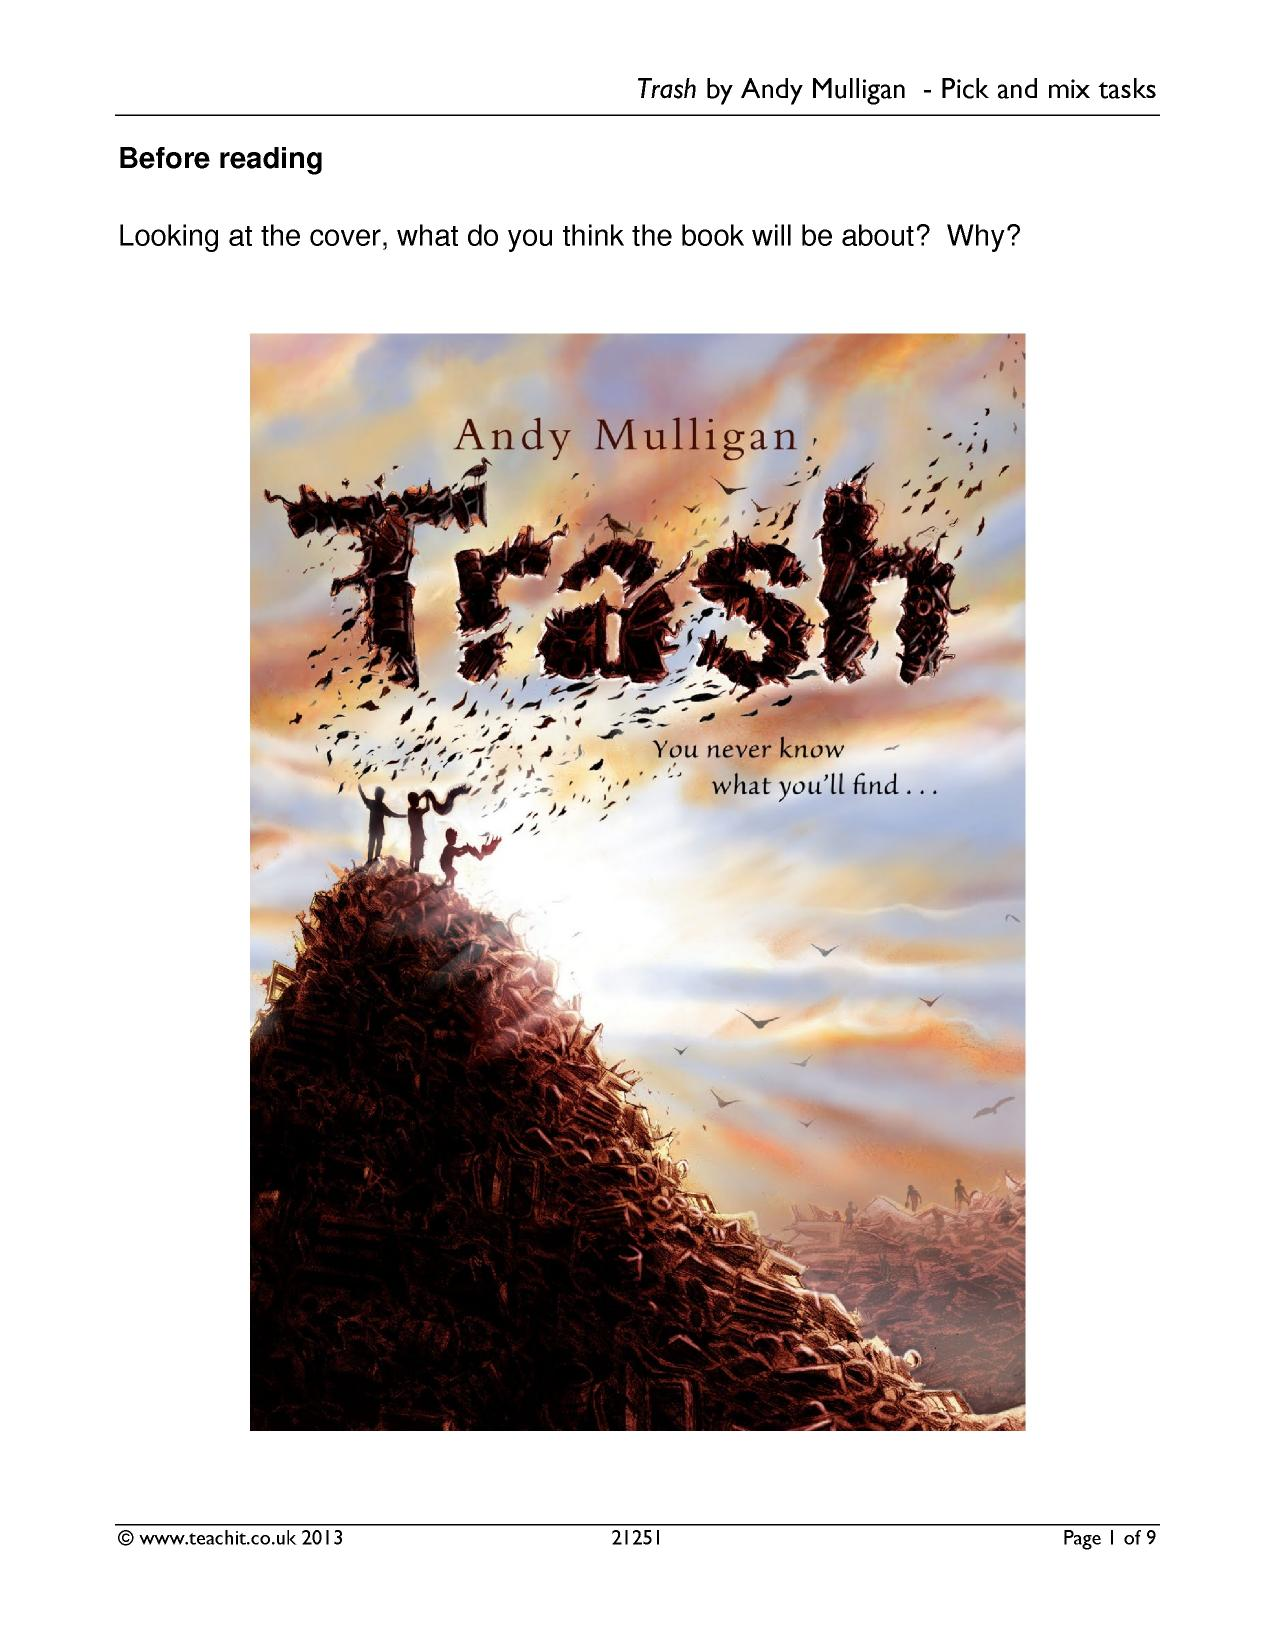 trash by andy mulligan essay essay The themes i have chosen are friendship  appearance vs reality 4a) select two themesrewrite each word as a thematic statement that reveals a truth you have learned from reading the novel.